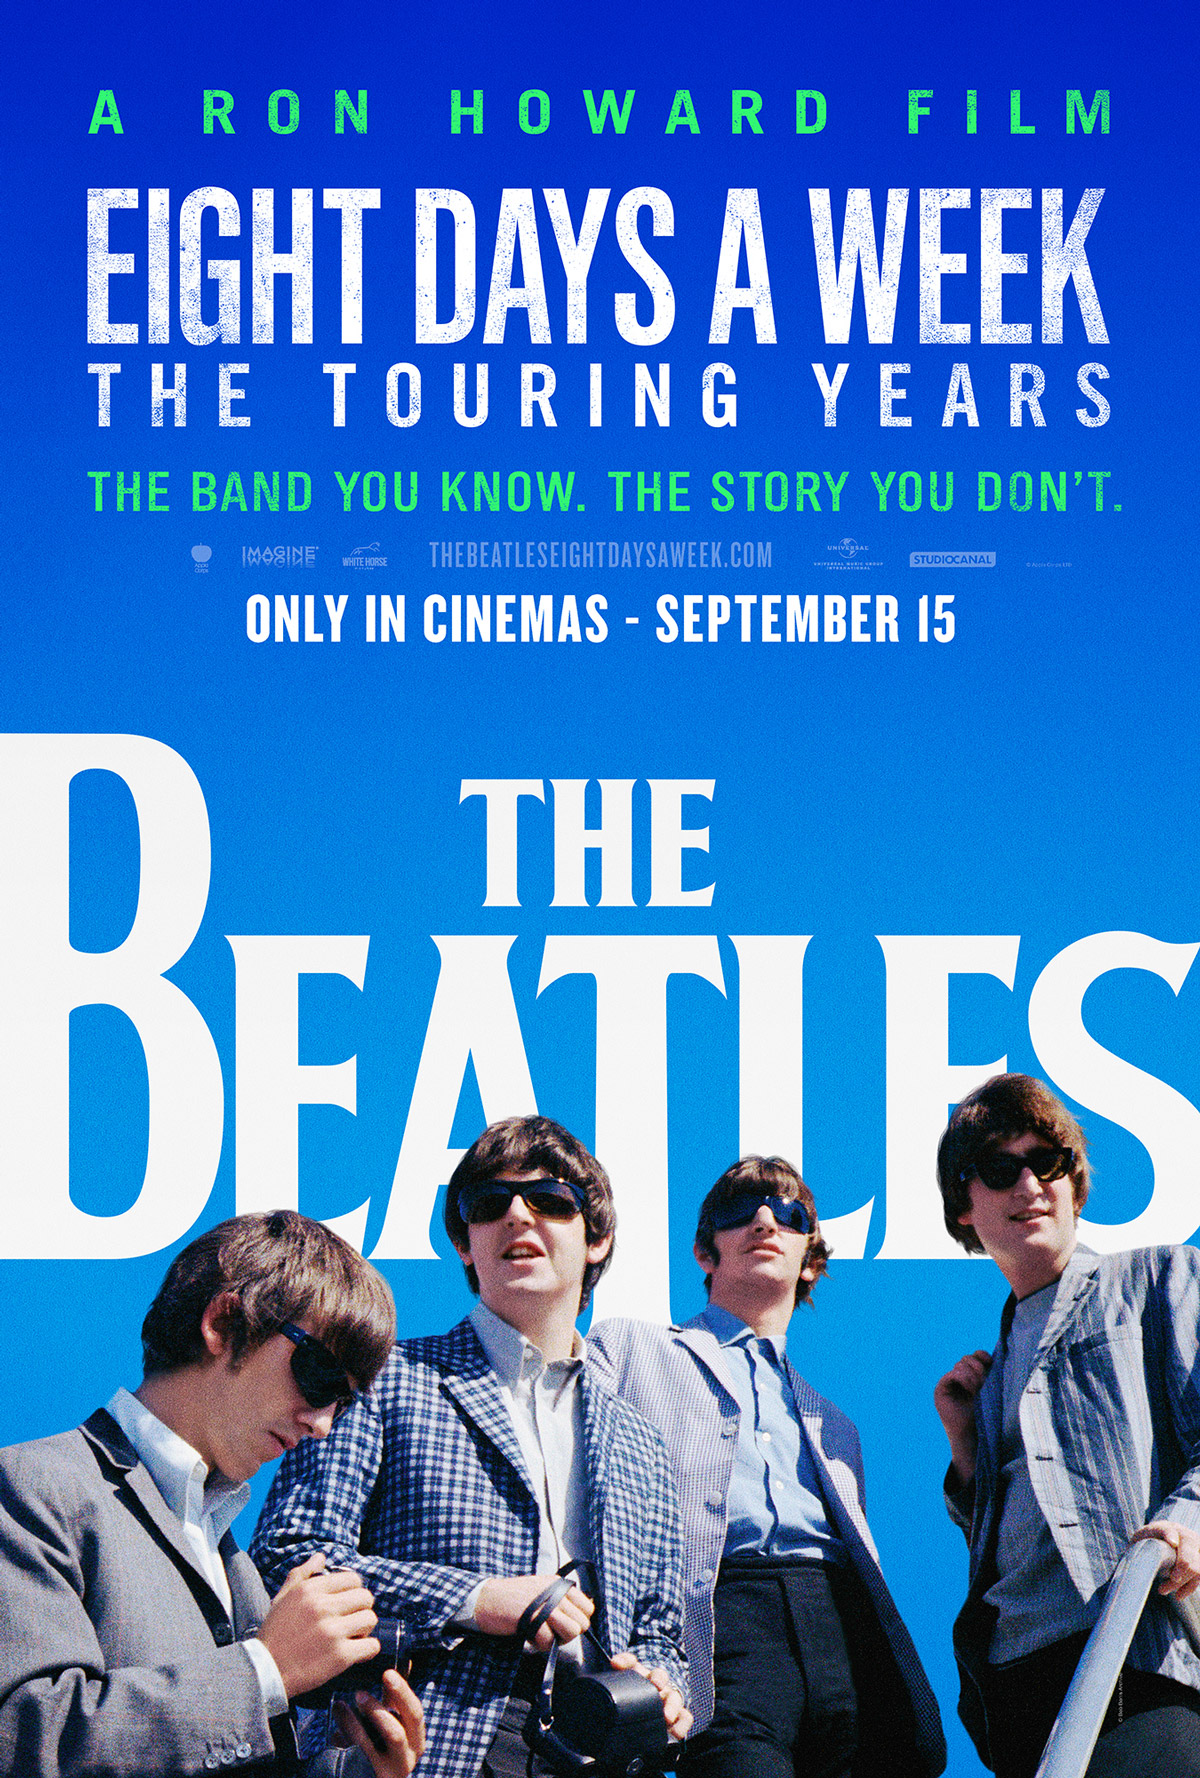 Ron Howard Beatles: Eight Days A Week poster